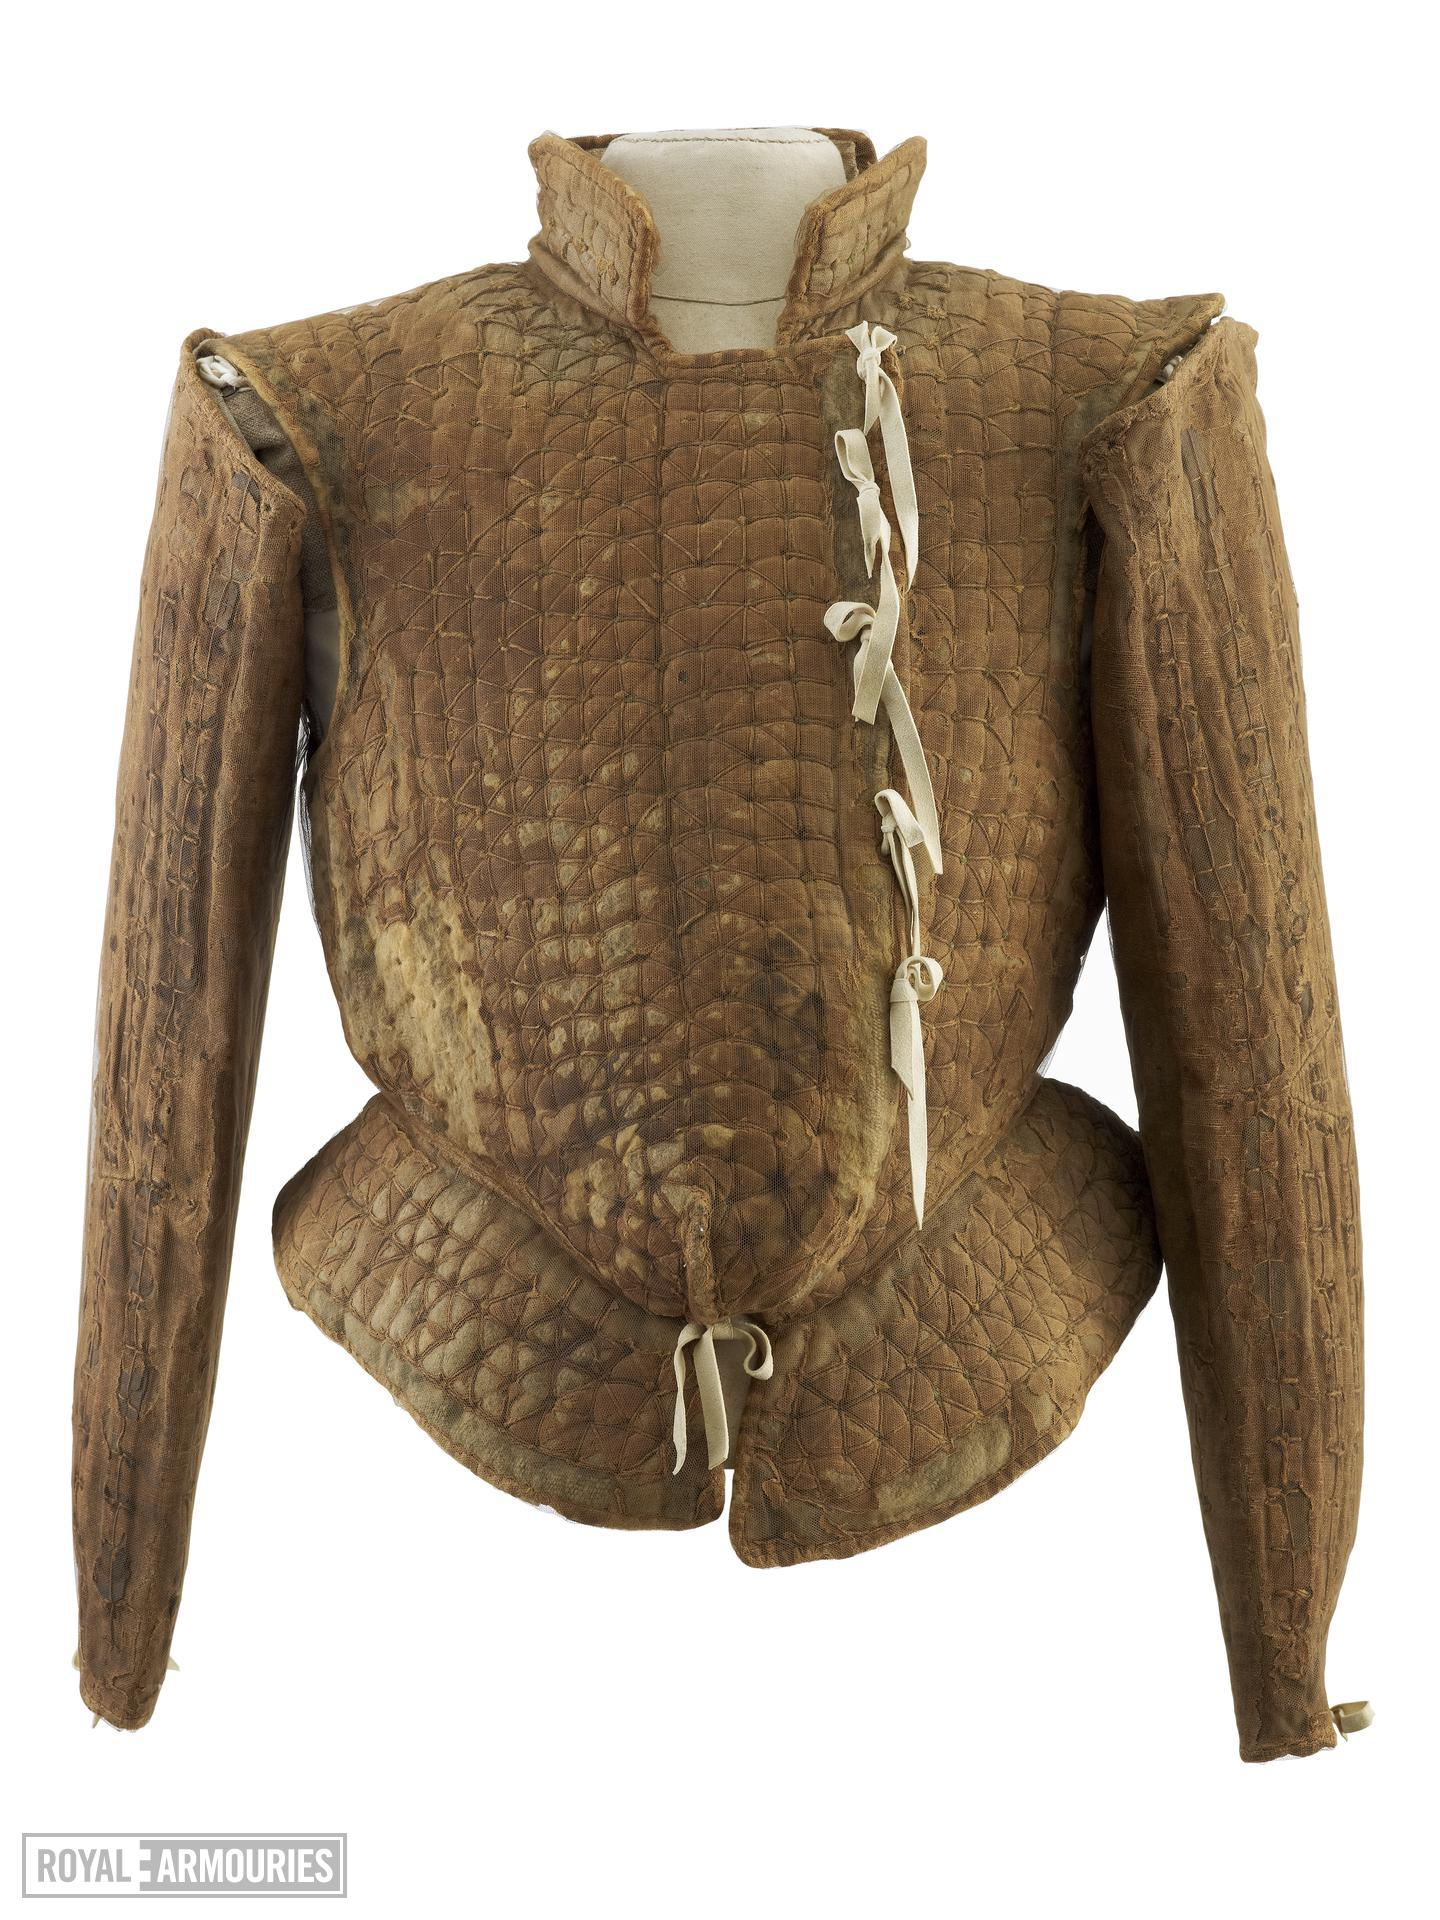 Jack of plate of peascod fashion, English, about 1560-1570 (III.1884)